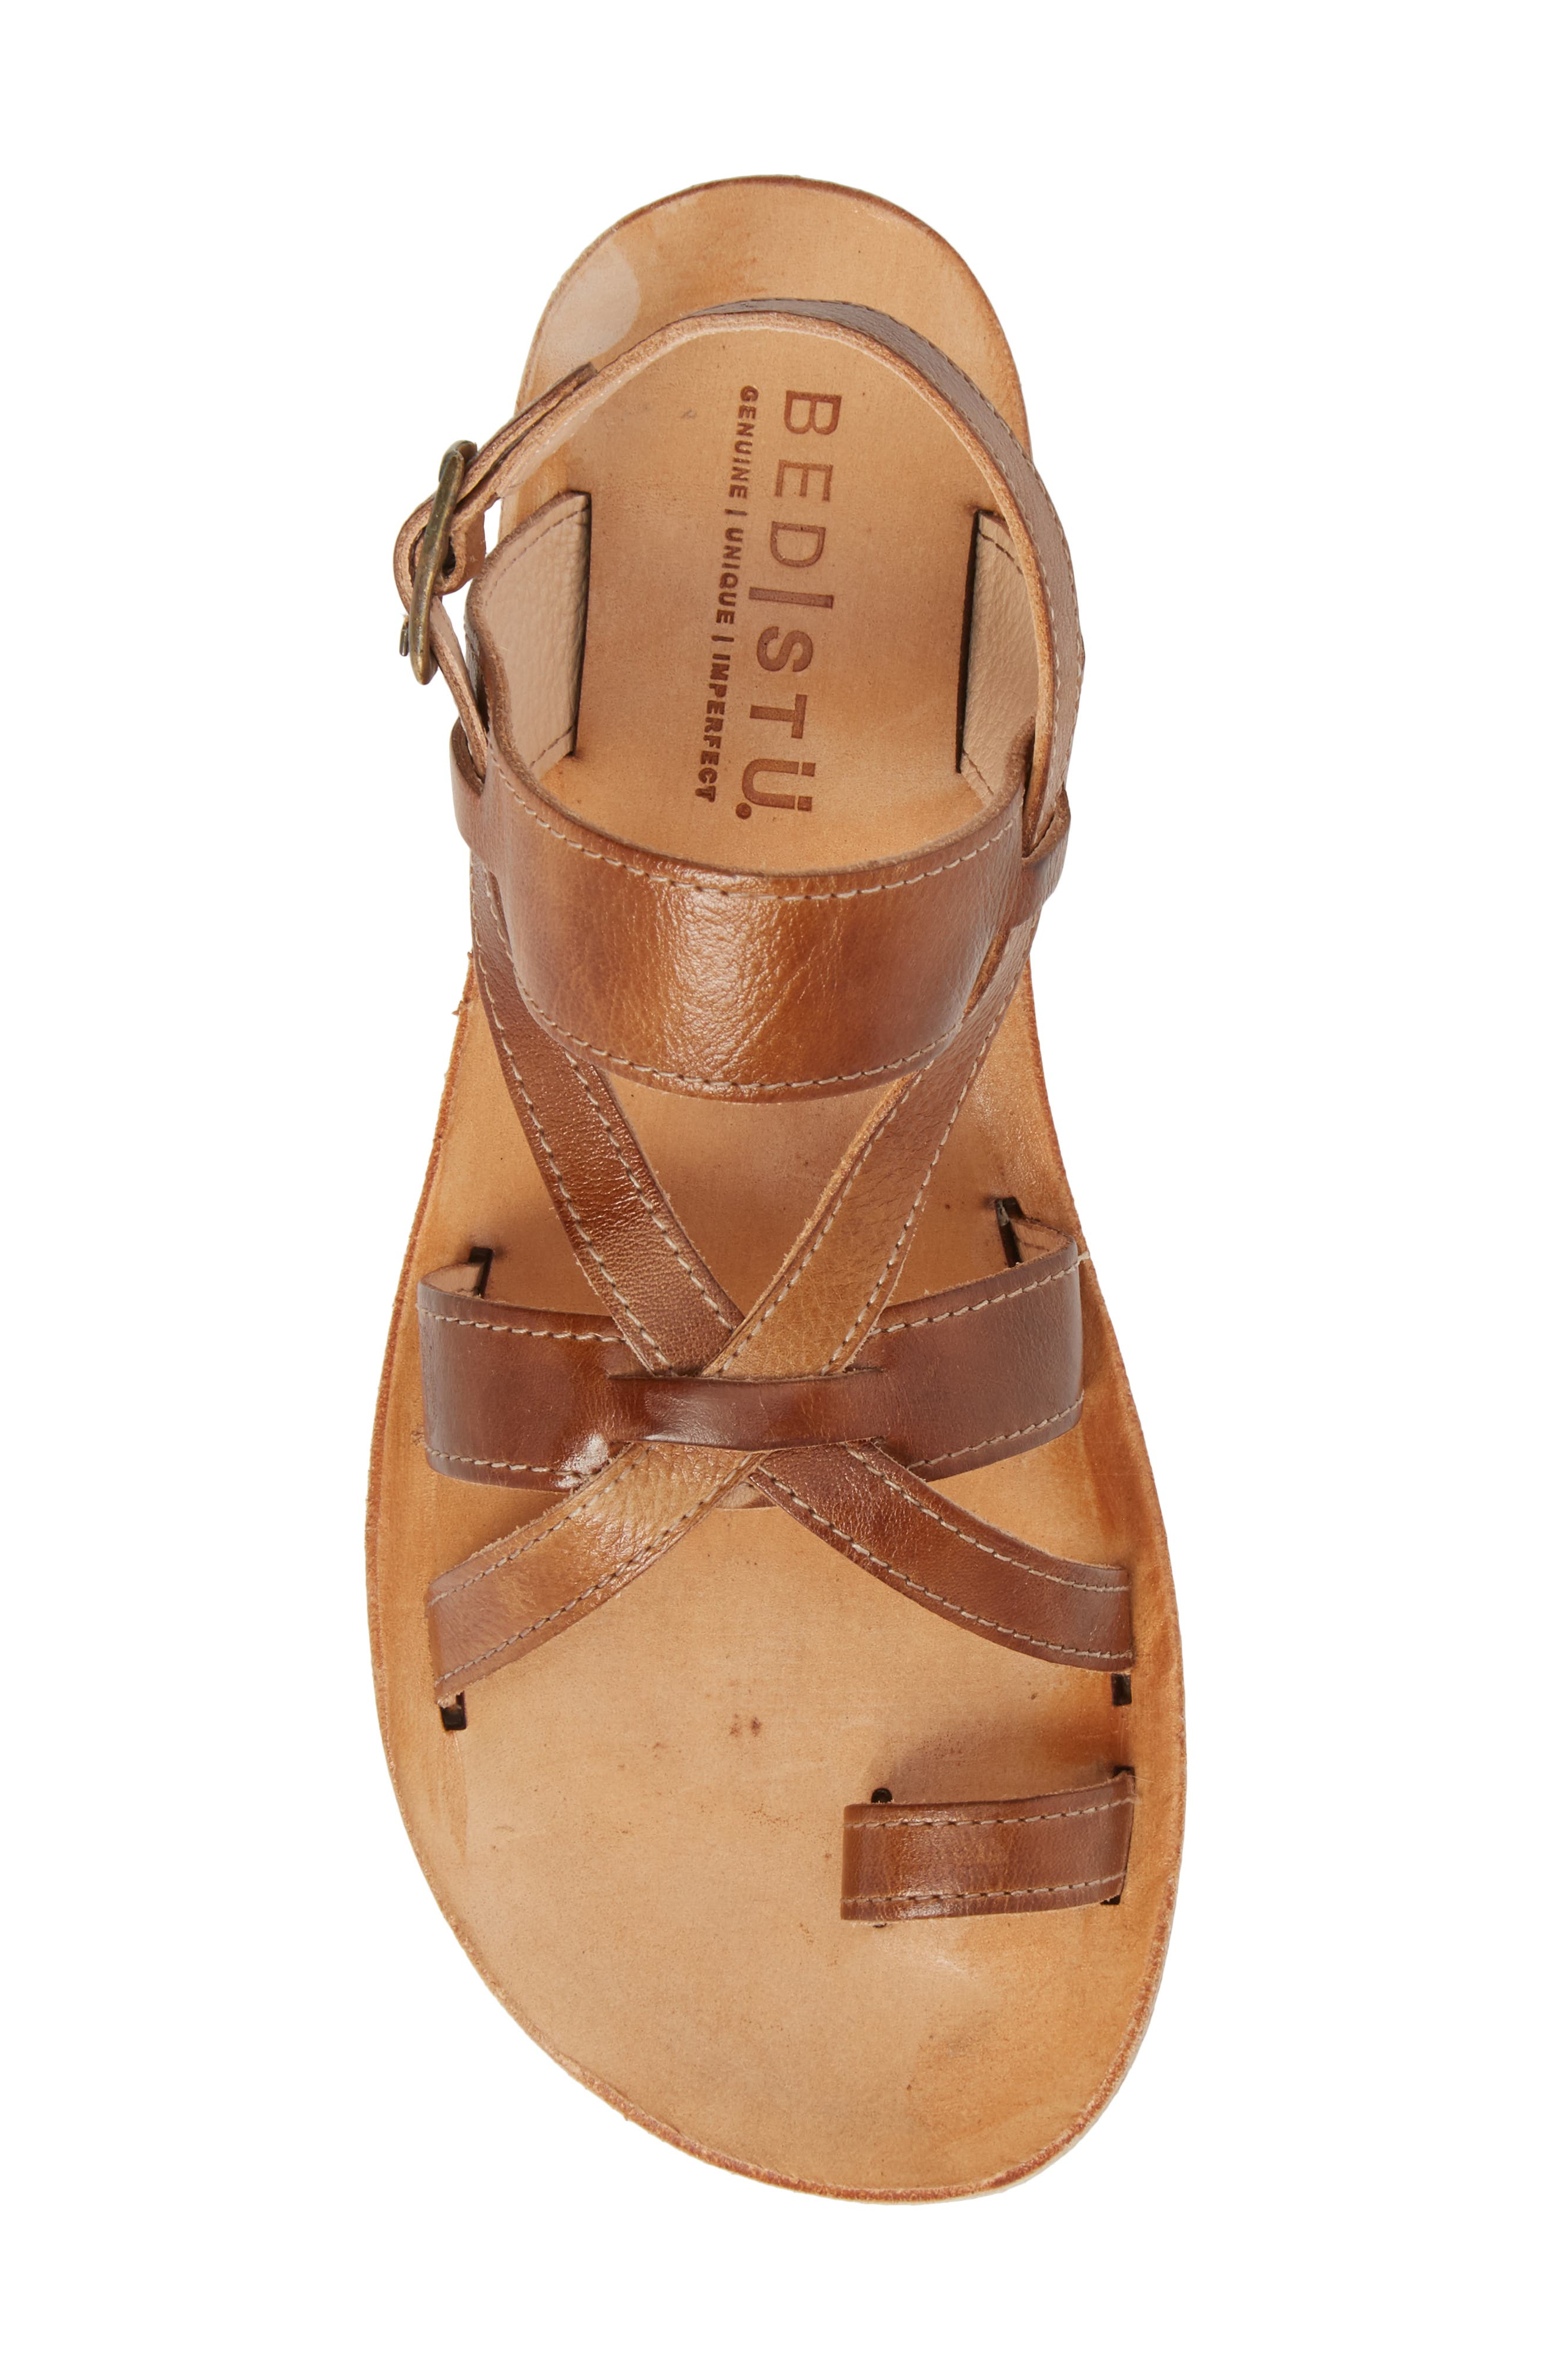 Manati Sandal,                             Alternate thumbnail 5, color,                             230